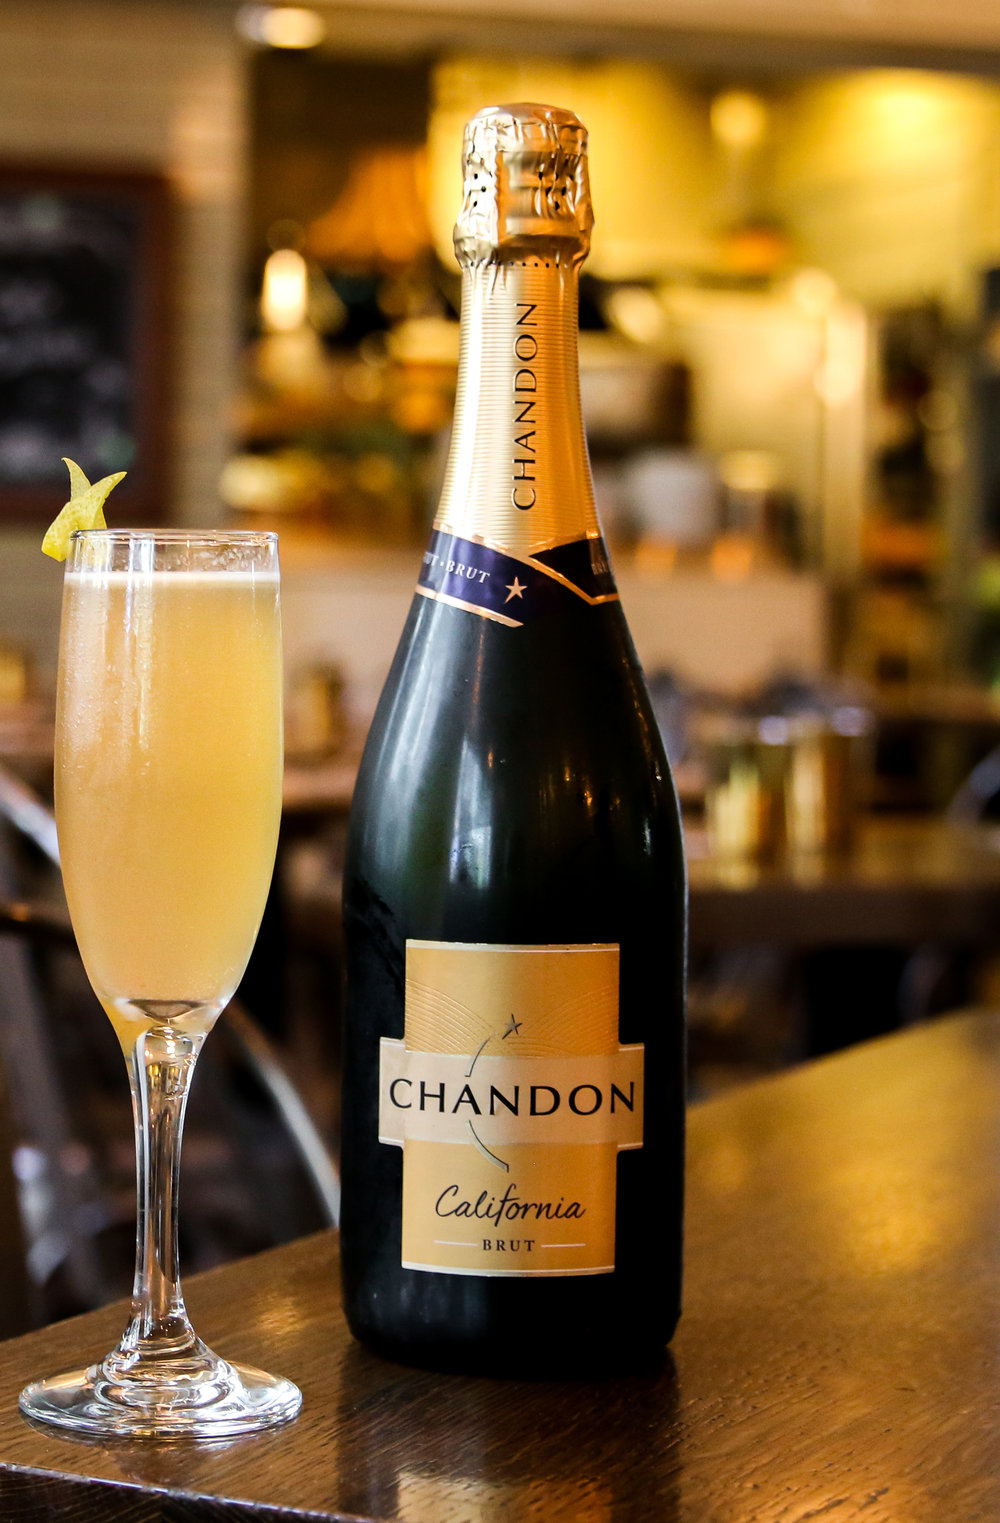 CAFÉ MEDINA MARKS NEW PARTNERSHIP WITH DOMAINE CHANDON AT EXCLUSIVE DINNER - October 18, 2018Café Medina will help winemaker Domaine Chandon celebrate its 45th anniversary by breaking out the bubbles as the downtown brunch destination welcomes the Napa Valley vintner for an exclusive 'Sparkling Supper' dinner on Monday, November 5.The event, which marks Medina's new exclusive partnership with the Golden State winery, begins with a stand-up reception at 6:30 p.m. showcasing Medina Bar Manager Marc Slingsby-Jones' original Last Flight cocktail featuring gin, green Chartreuse, lavender syrup and Chandon California Brut. Guests will then enjoy a three-course seated meal prepared by Executive Chef Chris West and paired with a variety of Chandon's sparkling wines.Tickets to the Café Medina Sparkling Supper on Monday, November 5 are available for $75 per person plus tax and gratuity and can be purchased online.